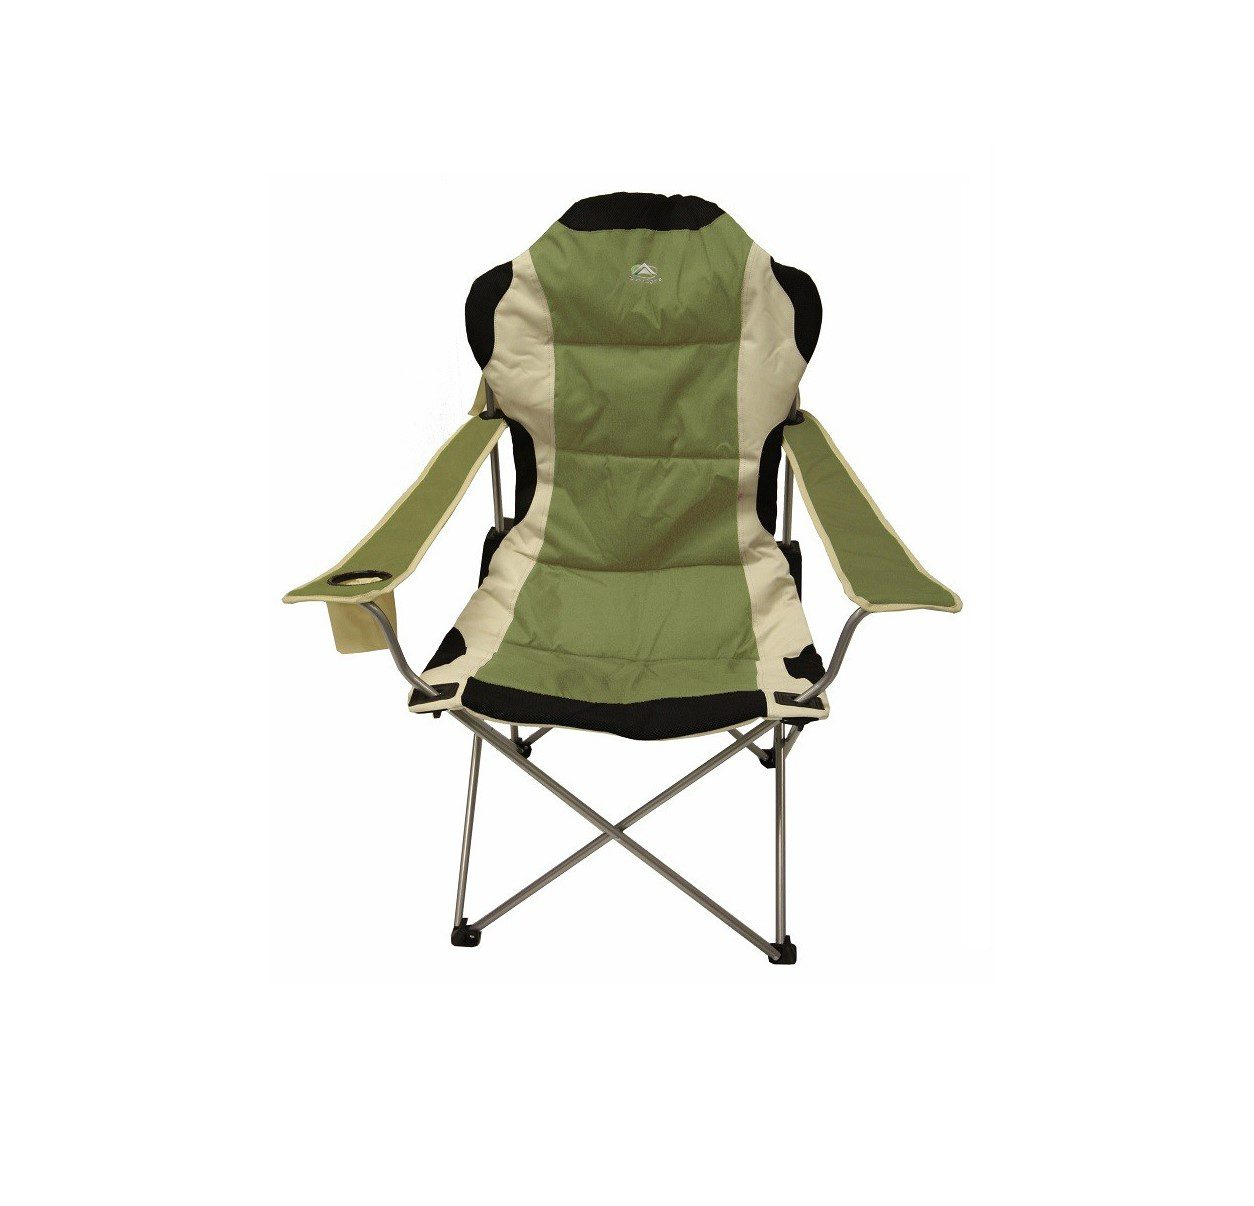 Sunncamp Deluxe Classic Armchair - Green